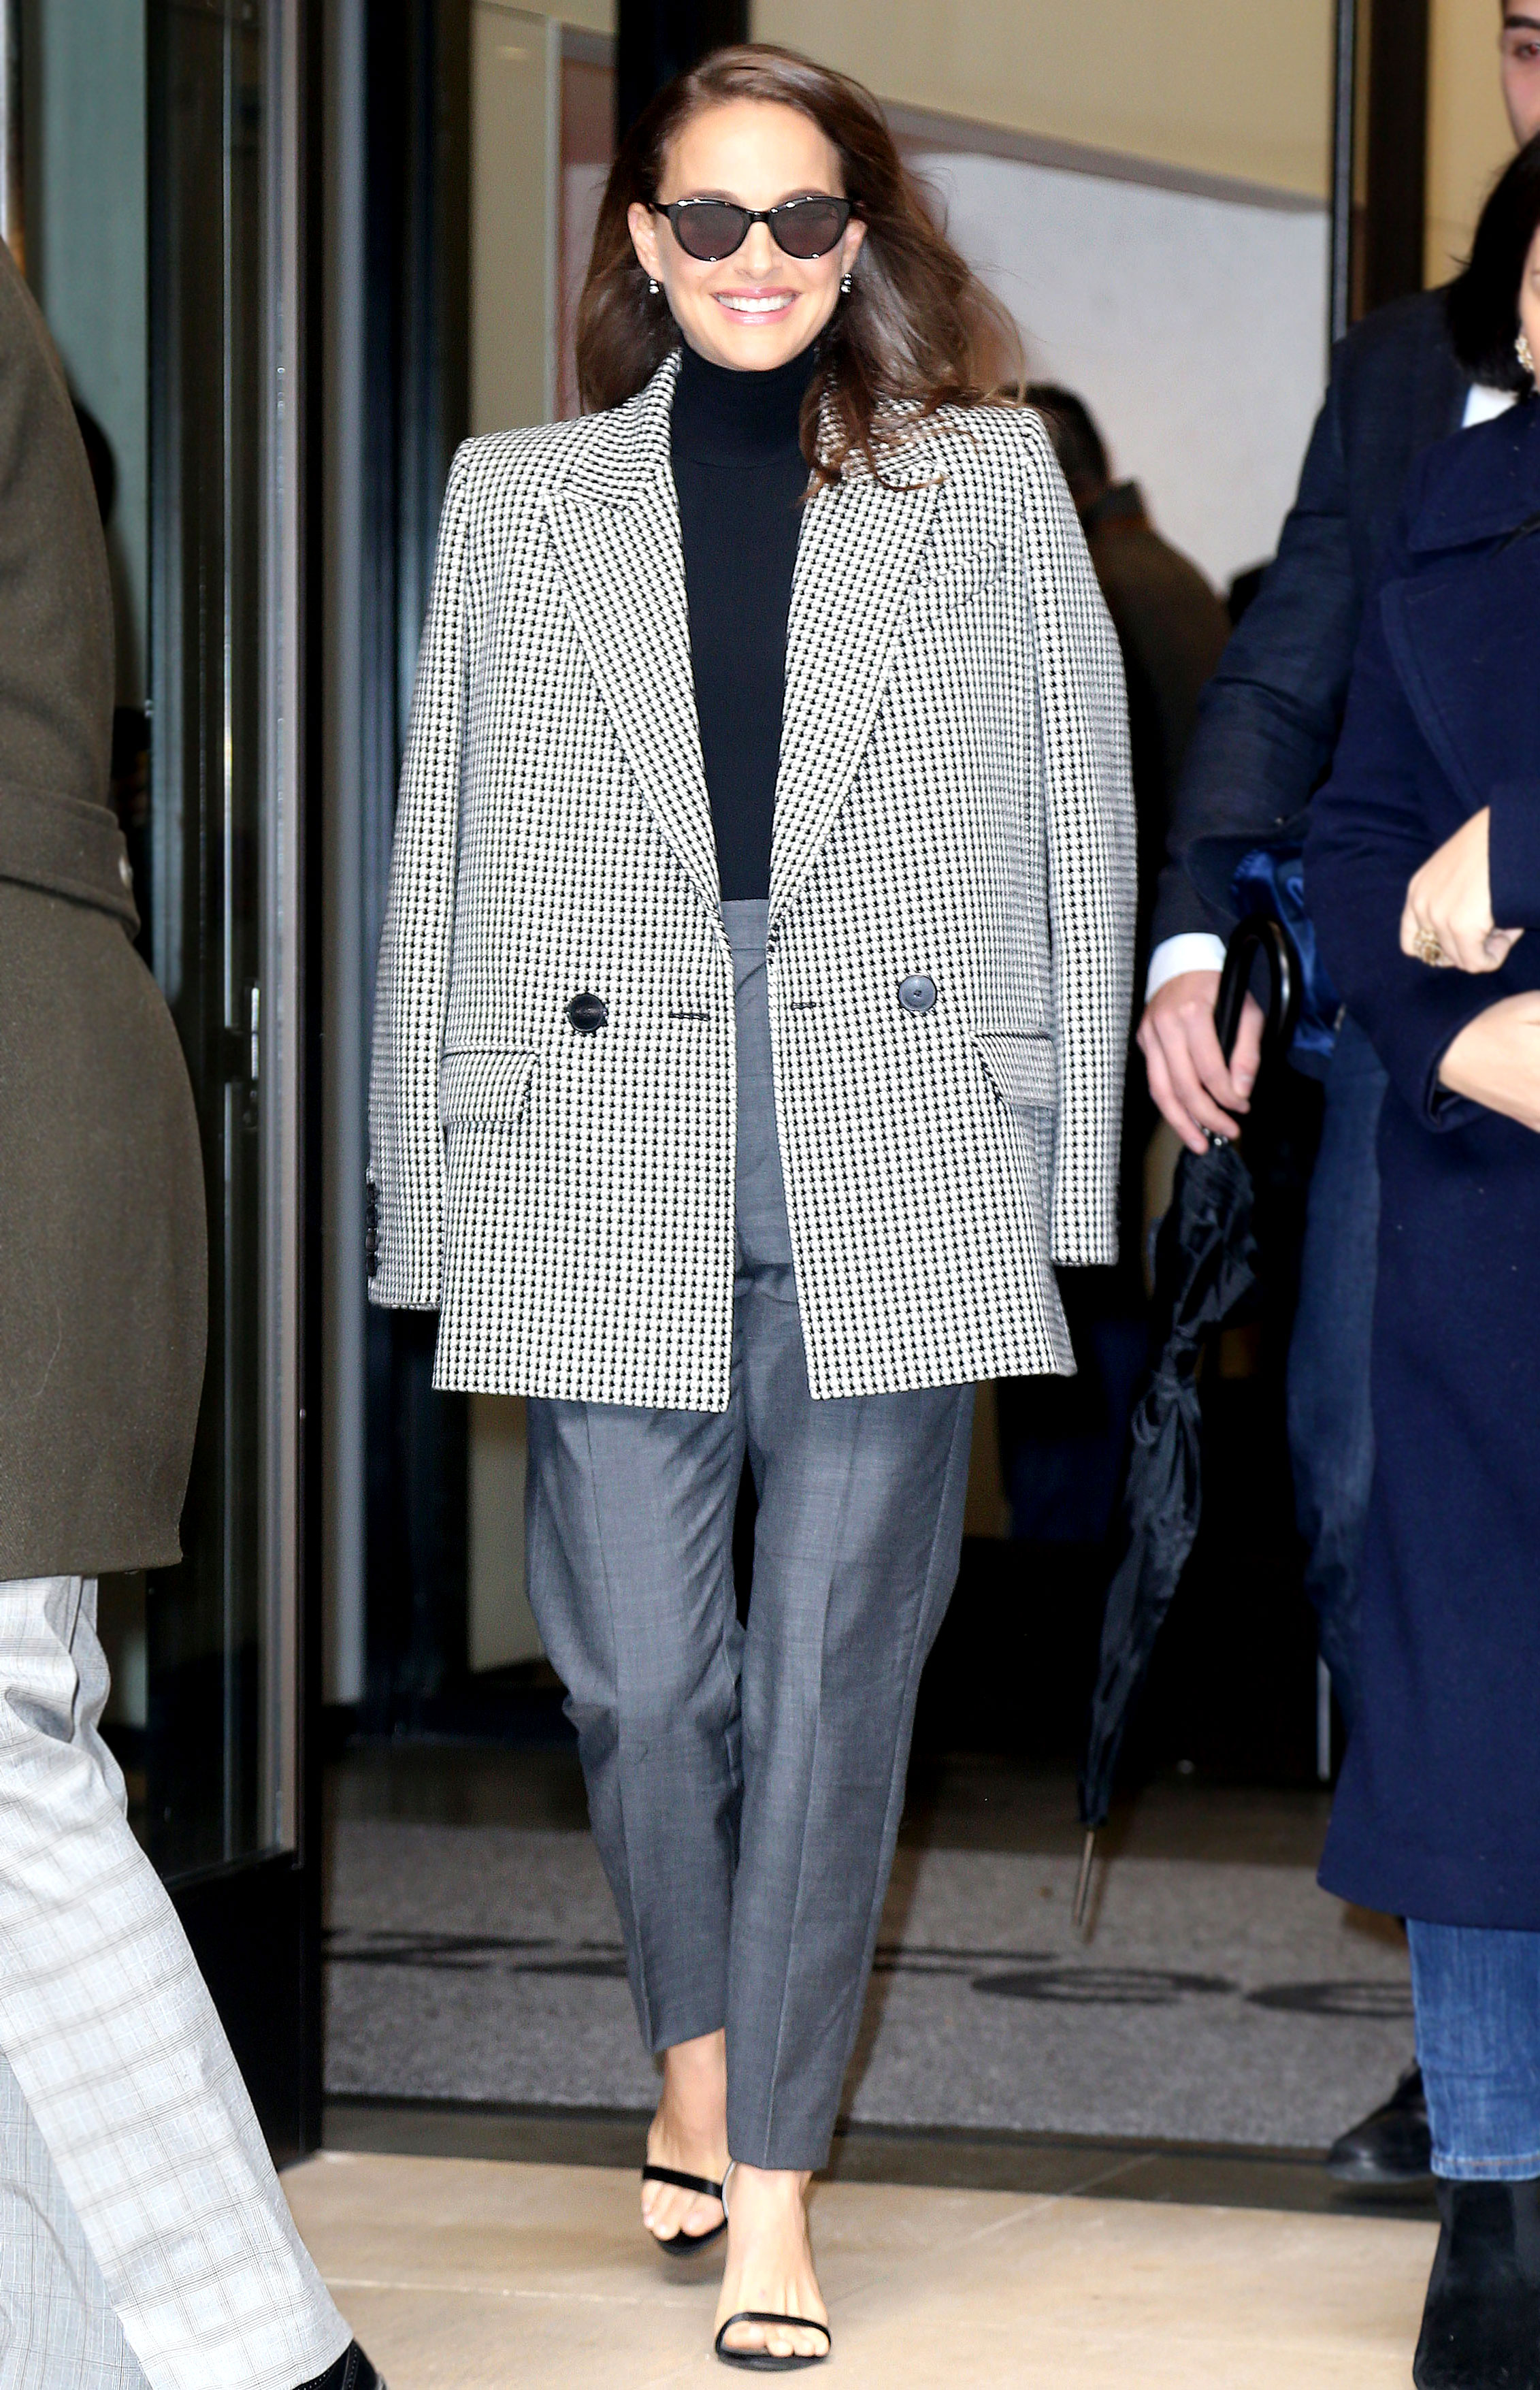 natalie-portman-gingham-coat - Out in NYC on Thursday, December 14, the Vox Lux star accessorized her chic Dior trousers and turtleneck combo with strappy sandals and a boxy herringbone blazer coat. The Oscar winner gets extra style points for chicly draping it over her shoulders.